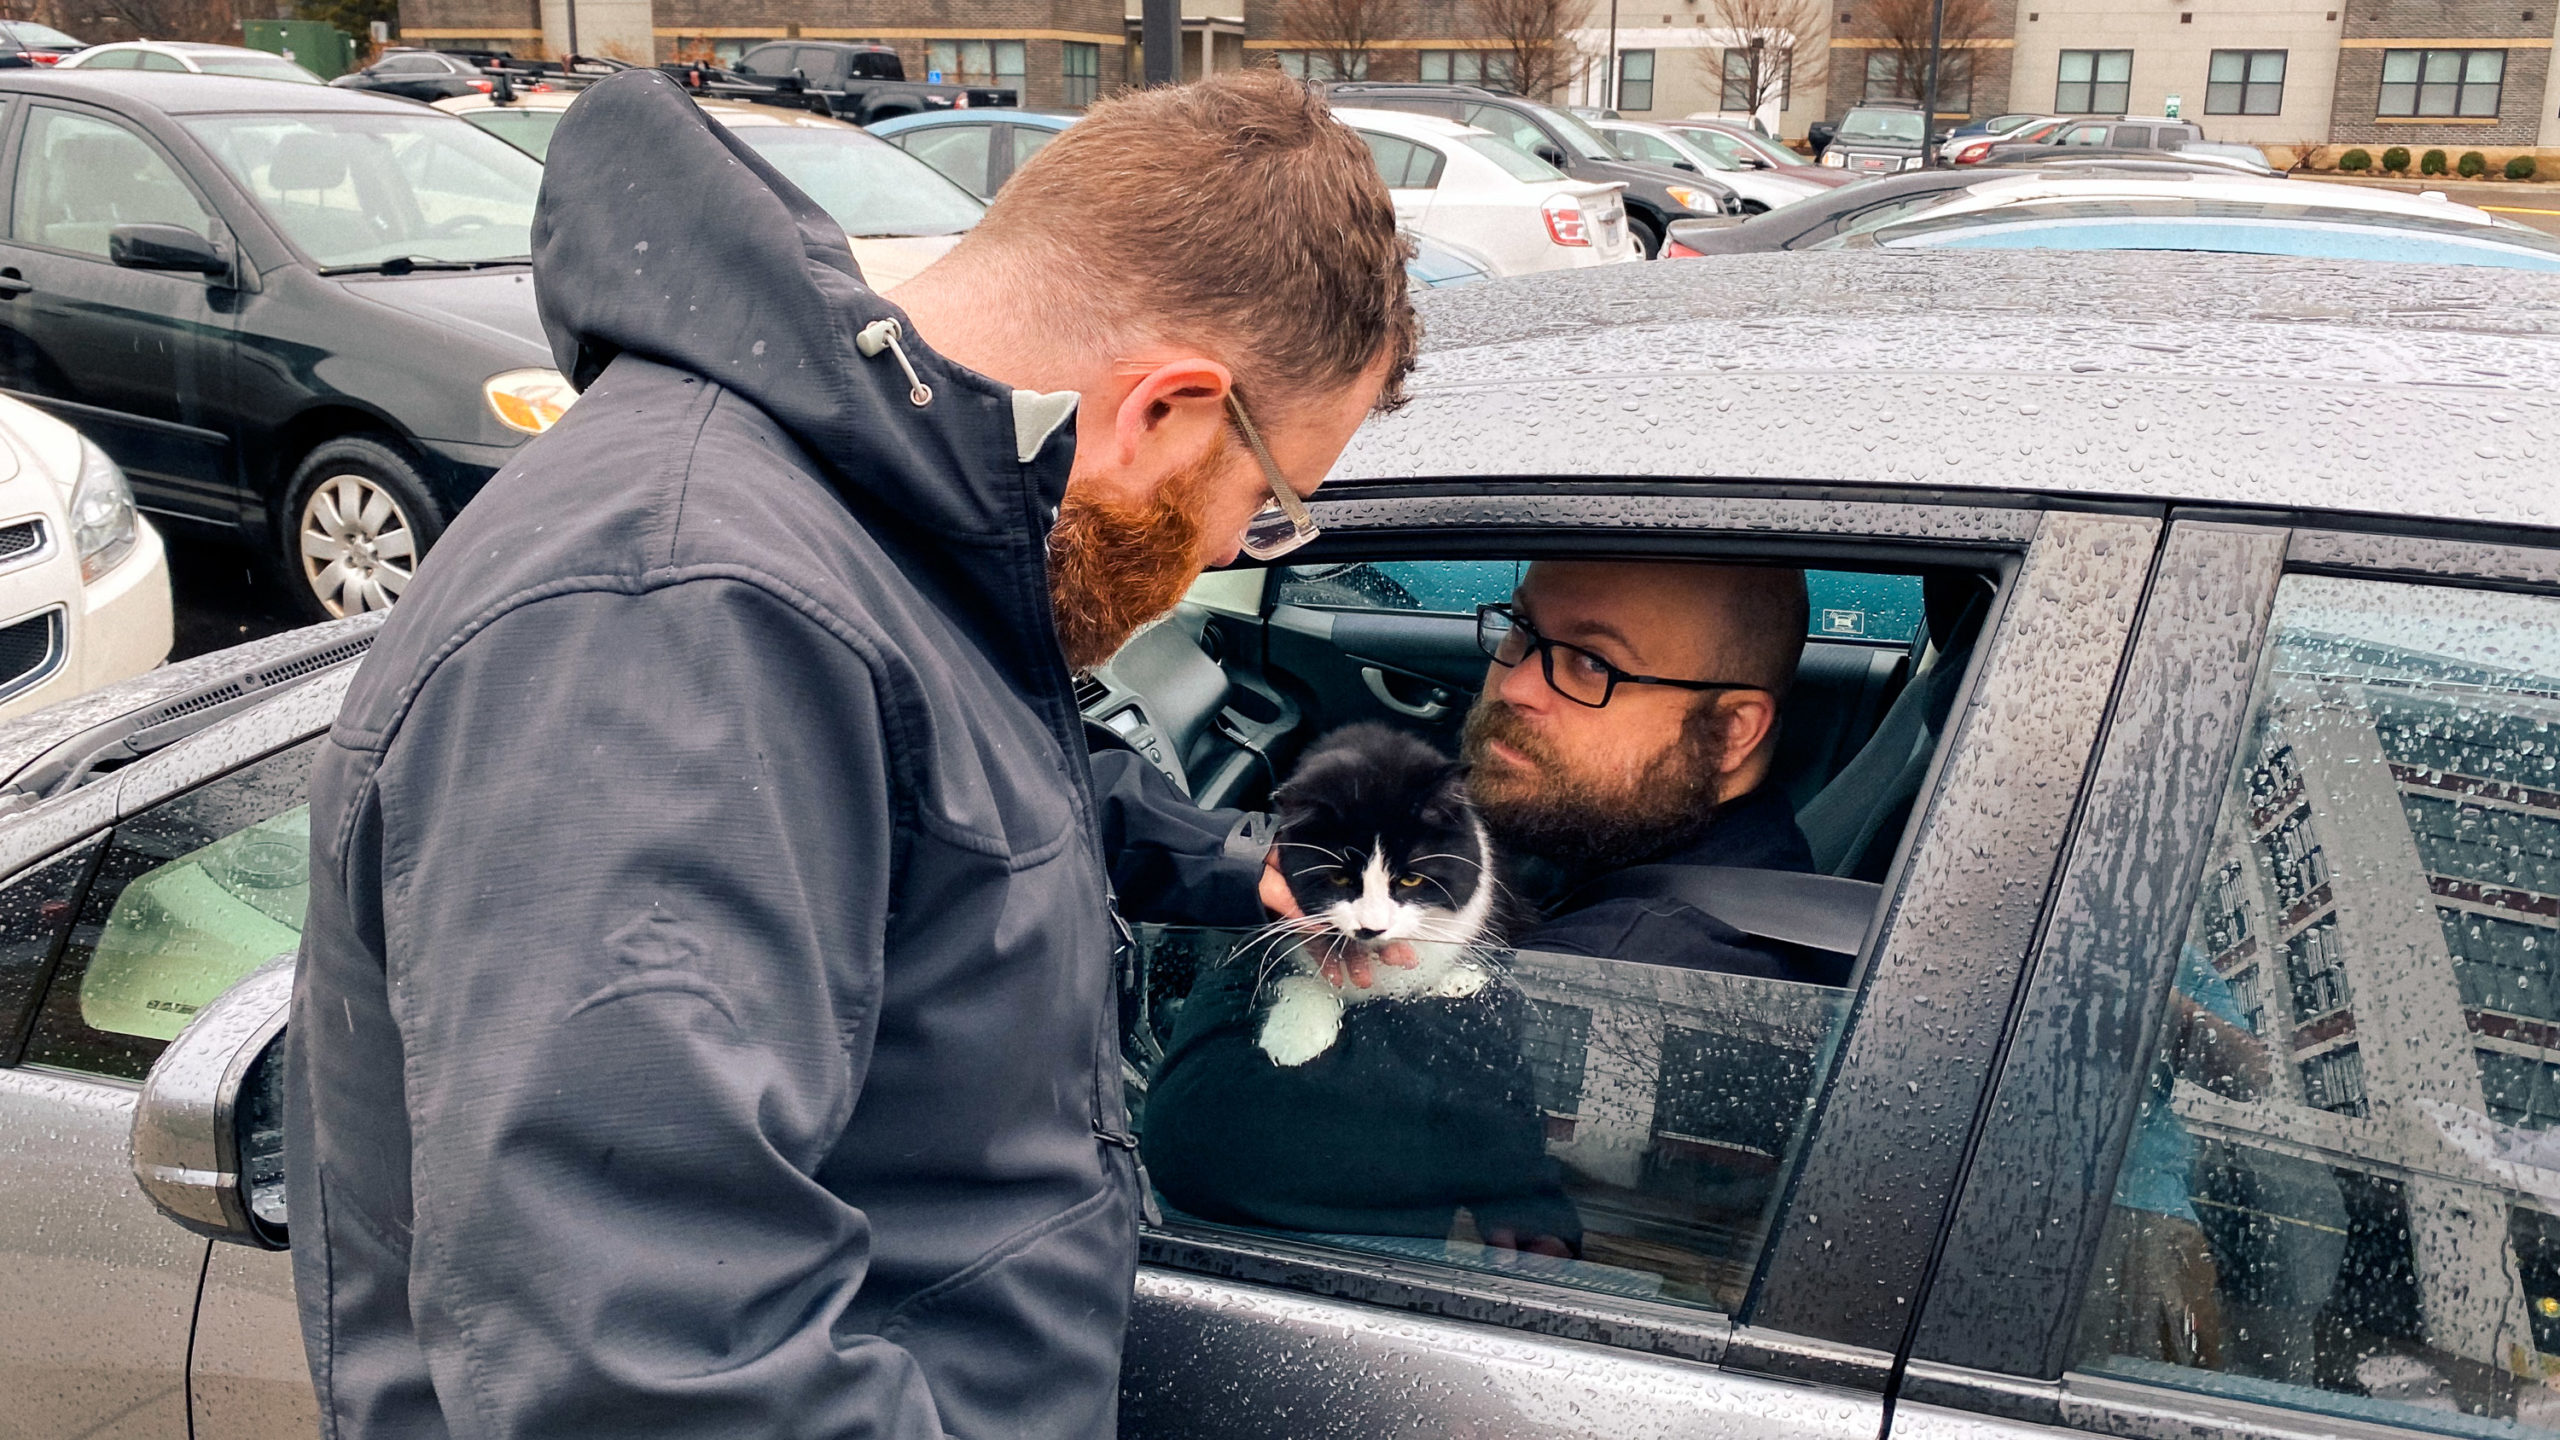 Rainy day, car, cat, beards